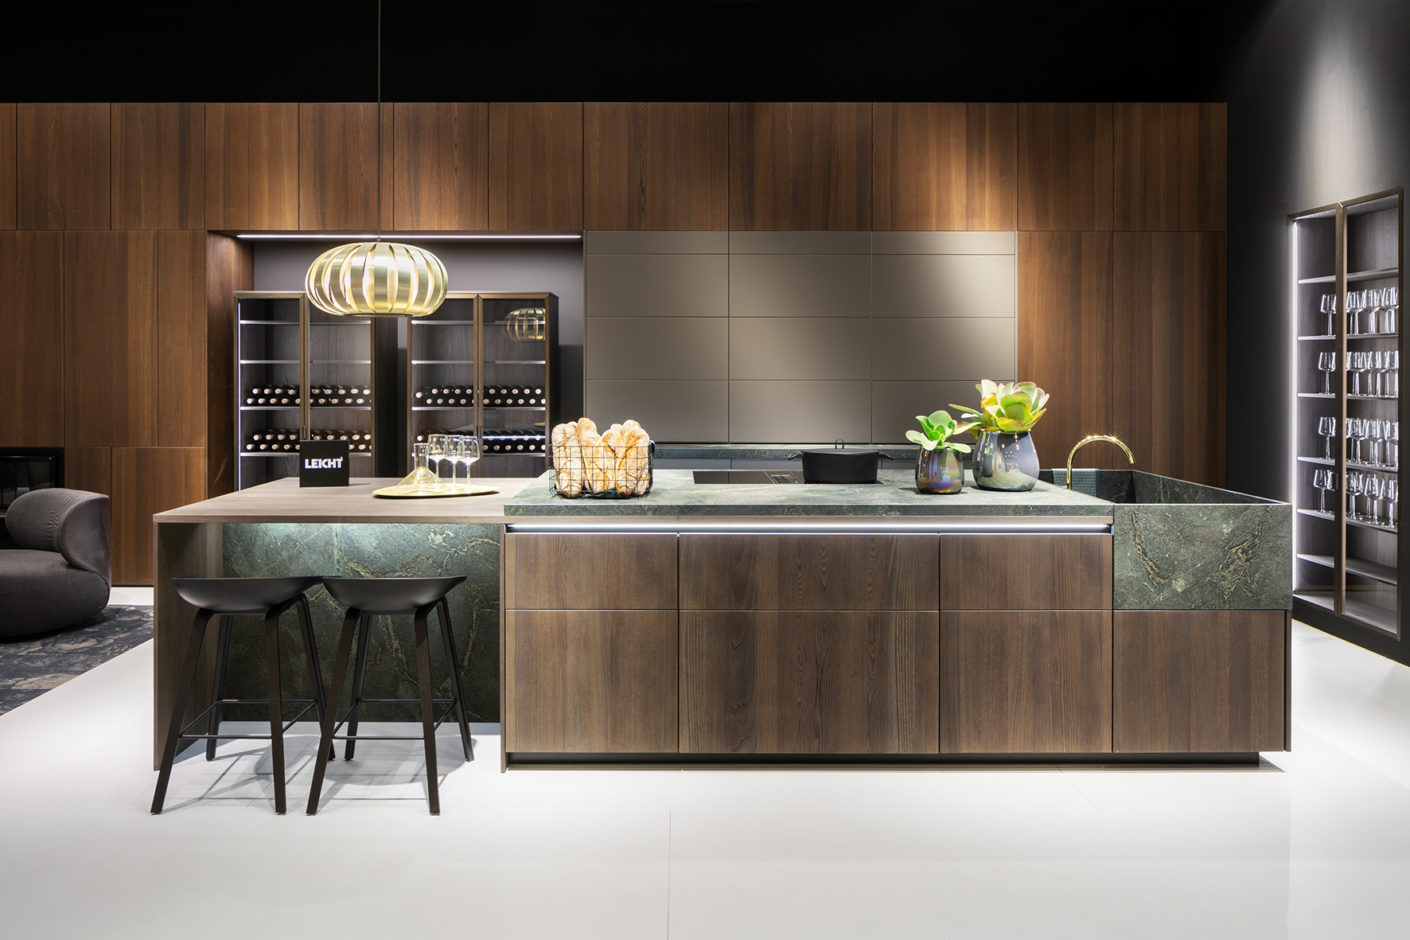 """At the centre of Leicht's booth was an impressive kitchen island combining dark wood, marble, brass and """"Umbra"""" surfaces from the """"Les Couleurs Le Corbusier"""" collection."""